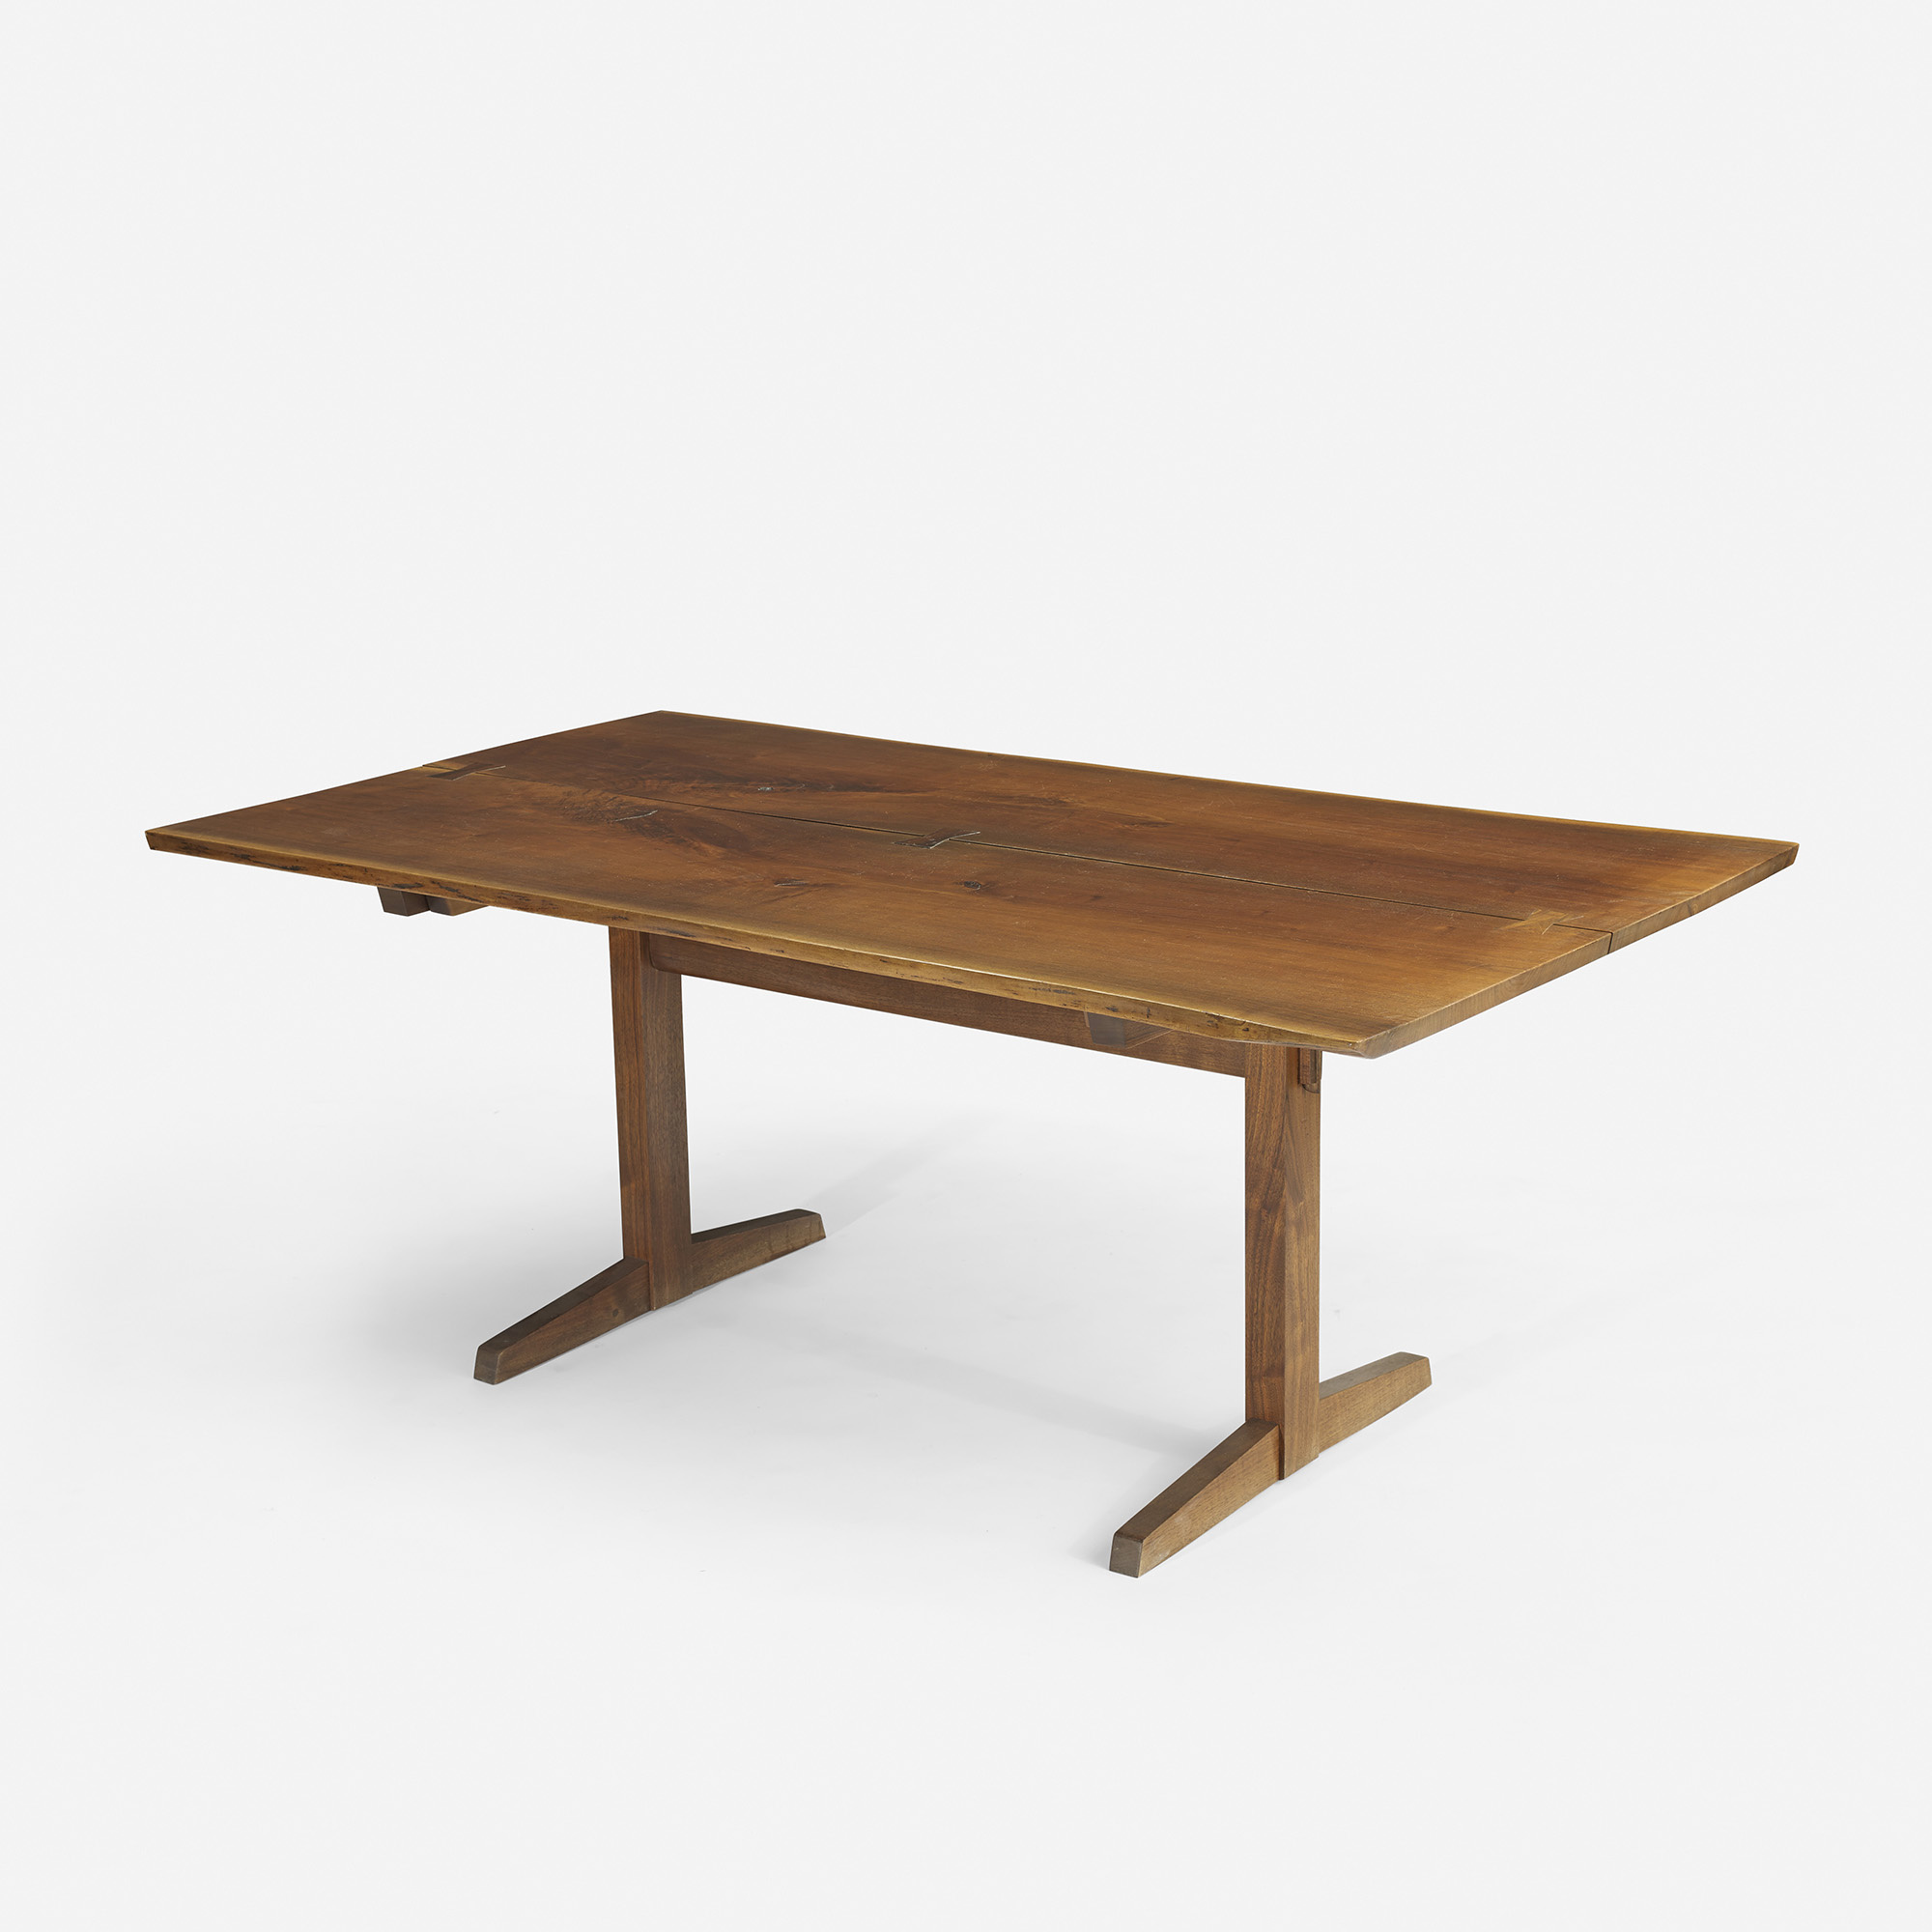 156: George Nakashima / Trestle Dining Table (1 Of 4) ...